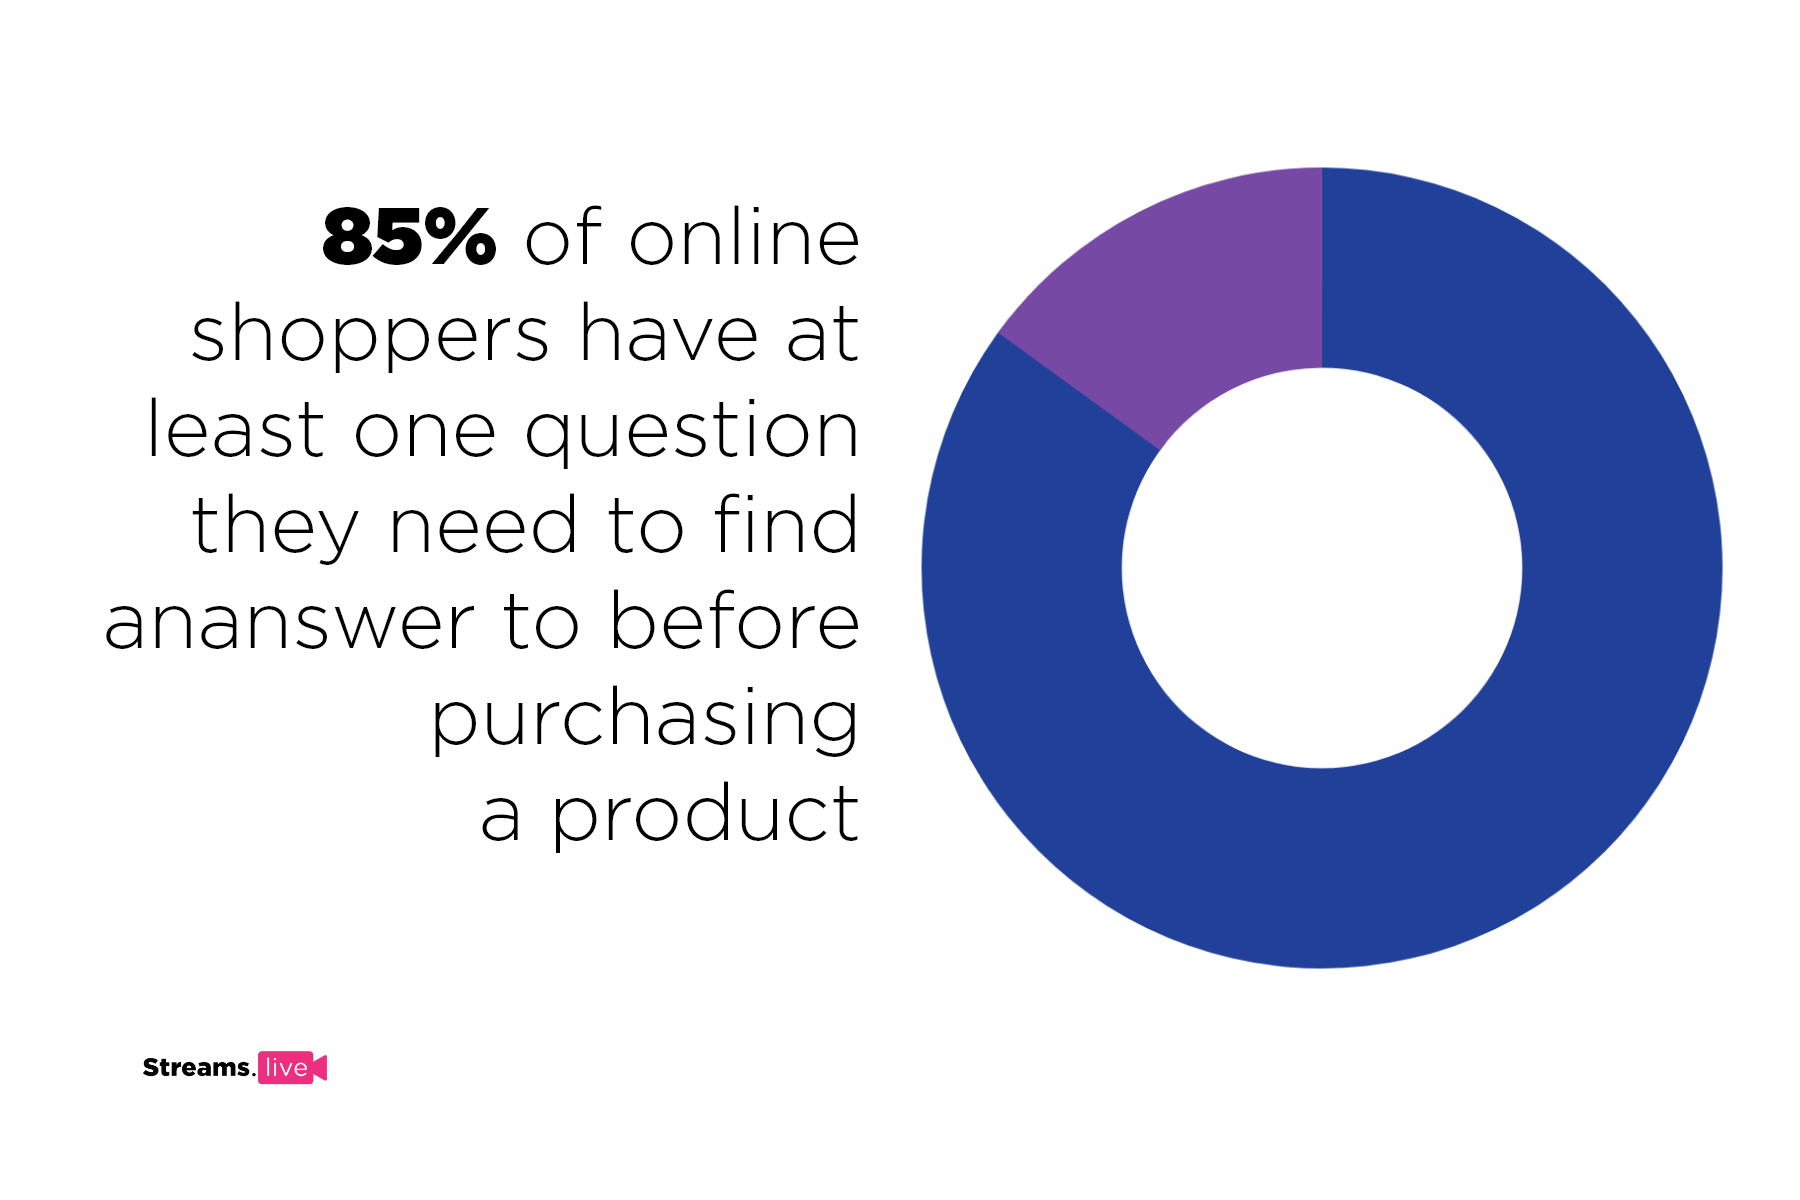 85% of customers have at least one question they need to find answer to